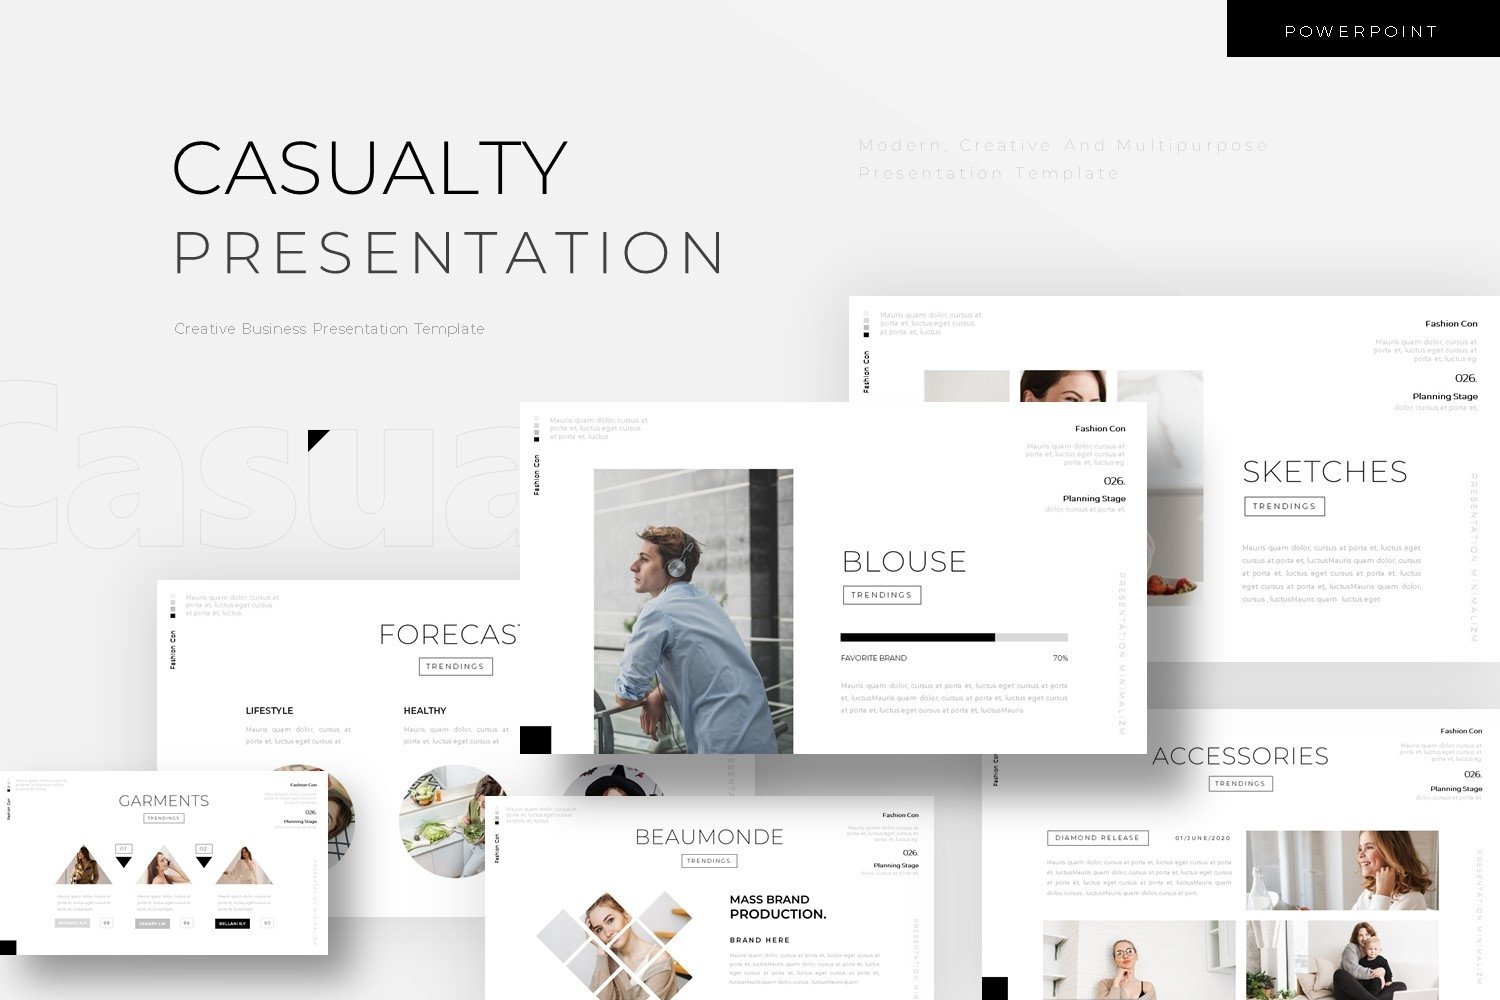 Casualty Minimalizm - Powerpoint Template example image 1